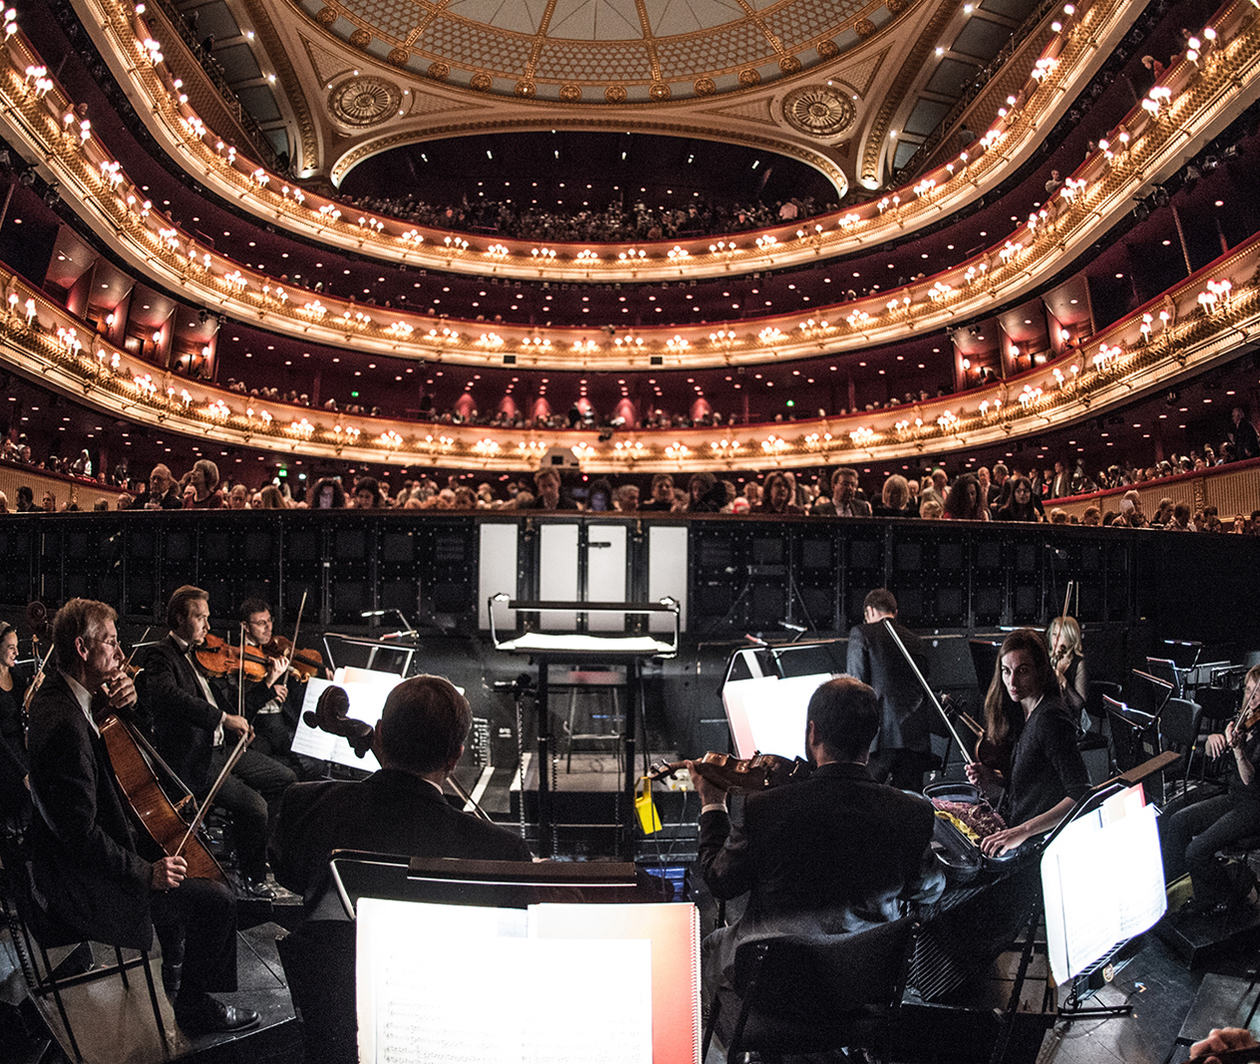 Inside Opera: Why Does It Matter?